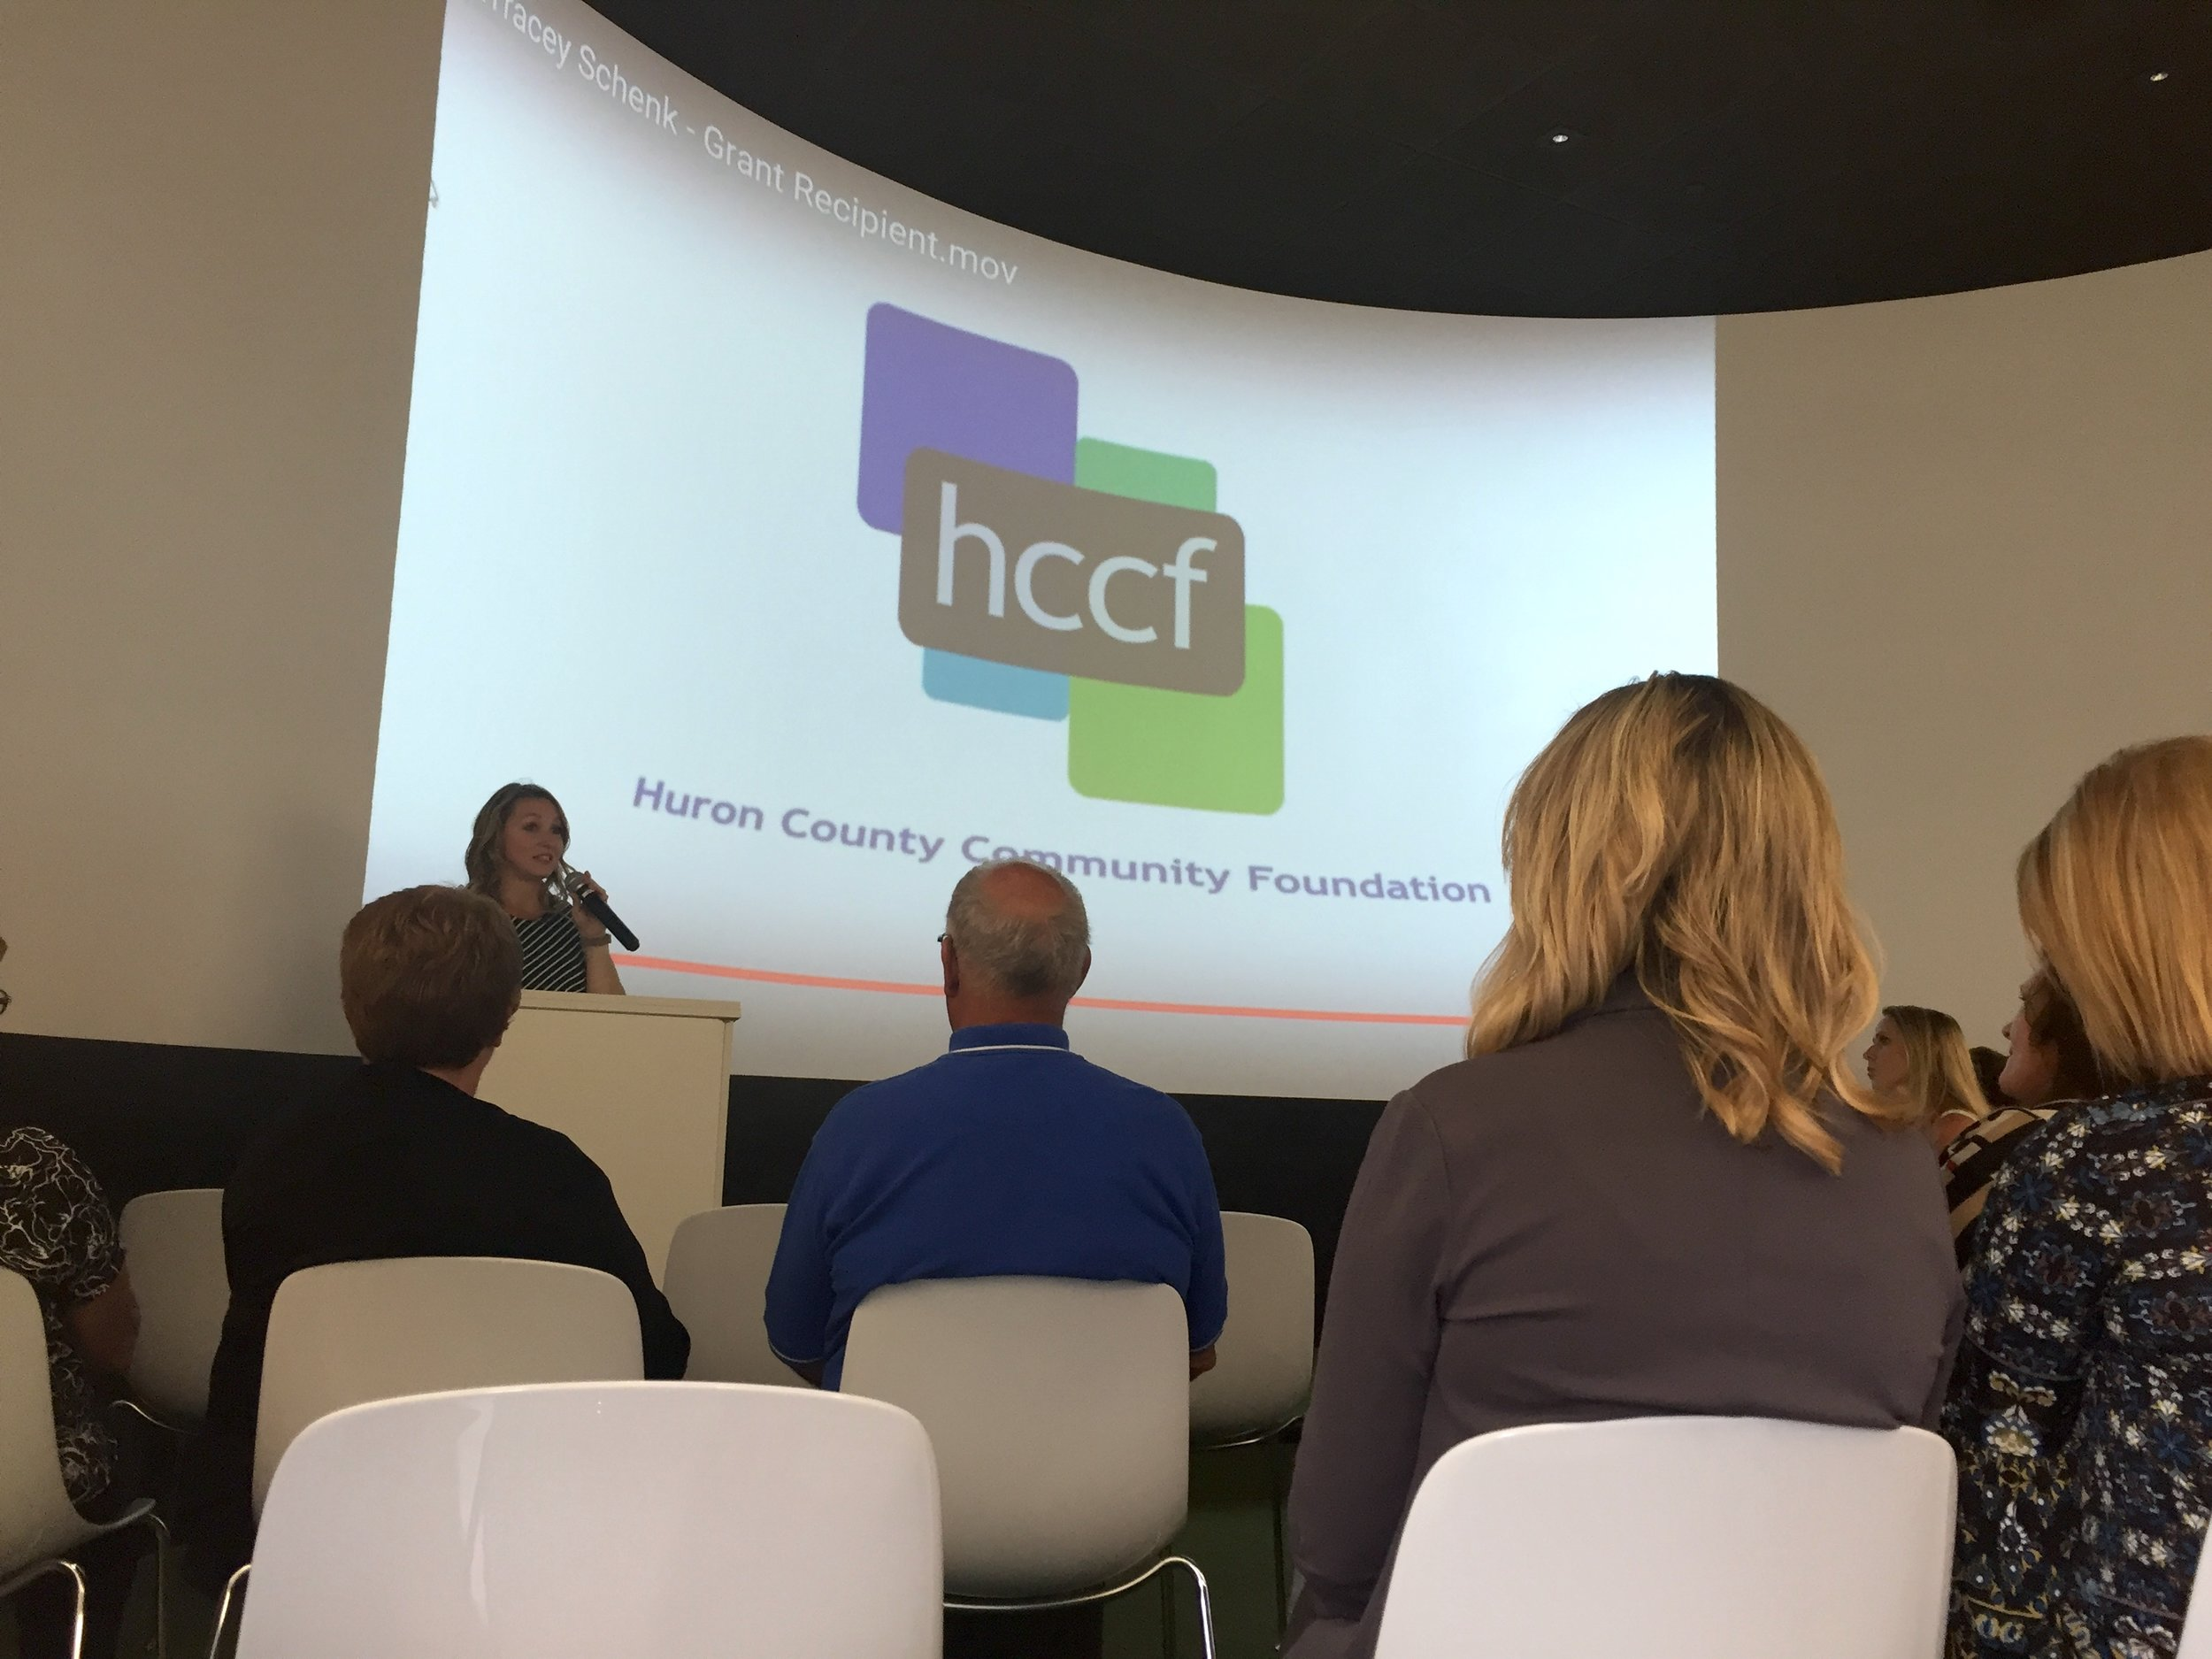 Mackenzie Price Sundblad, Executive Director of the Huron County Community Foundation, speaking at the 2017 HCCF Annual Meeting last Thursday.